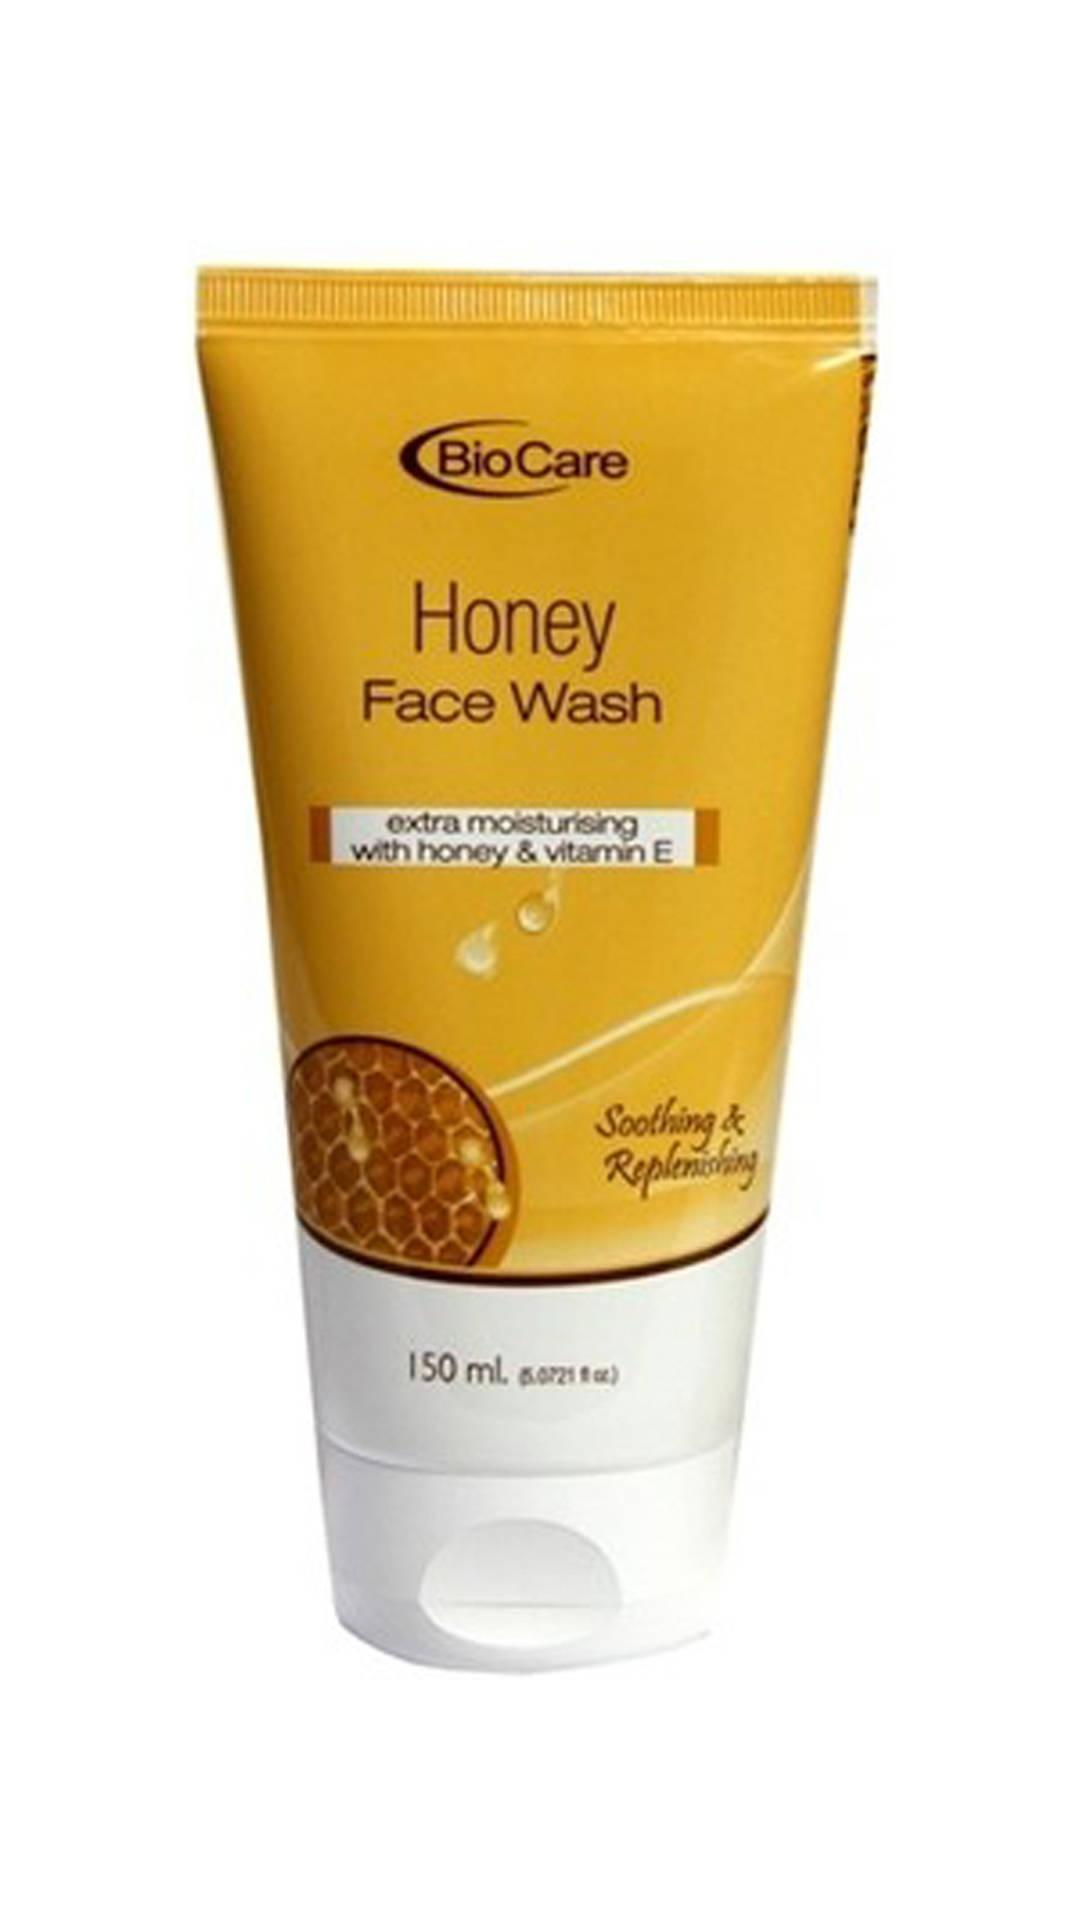 Biocare Honey Face Wash